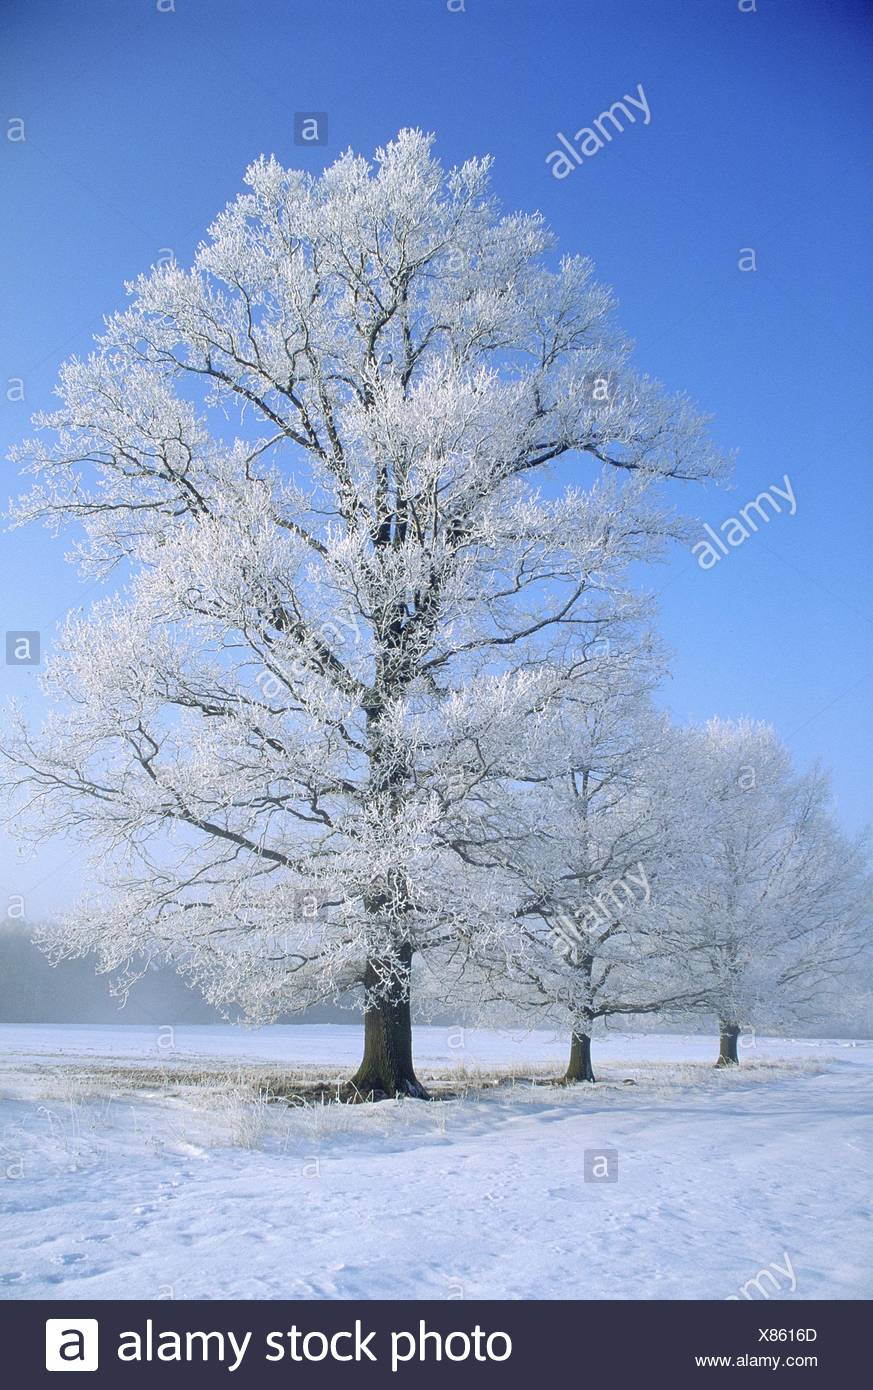 Sessile oak (Quercus petraea), in snow, Germany - Stock Image